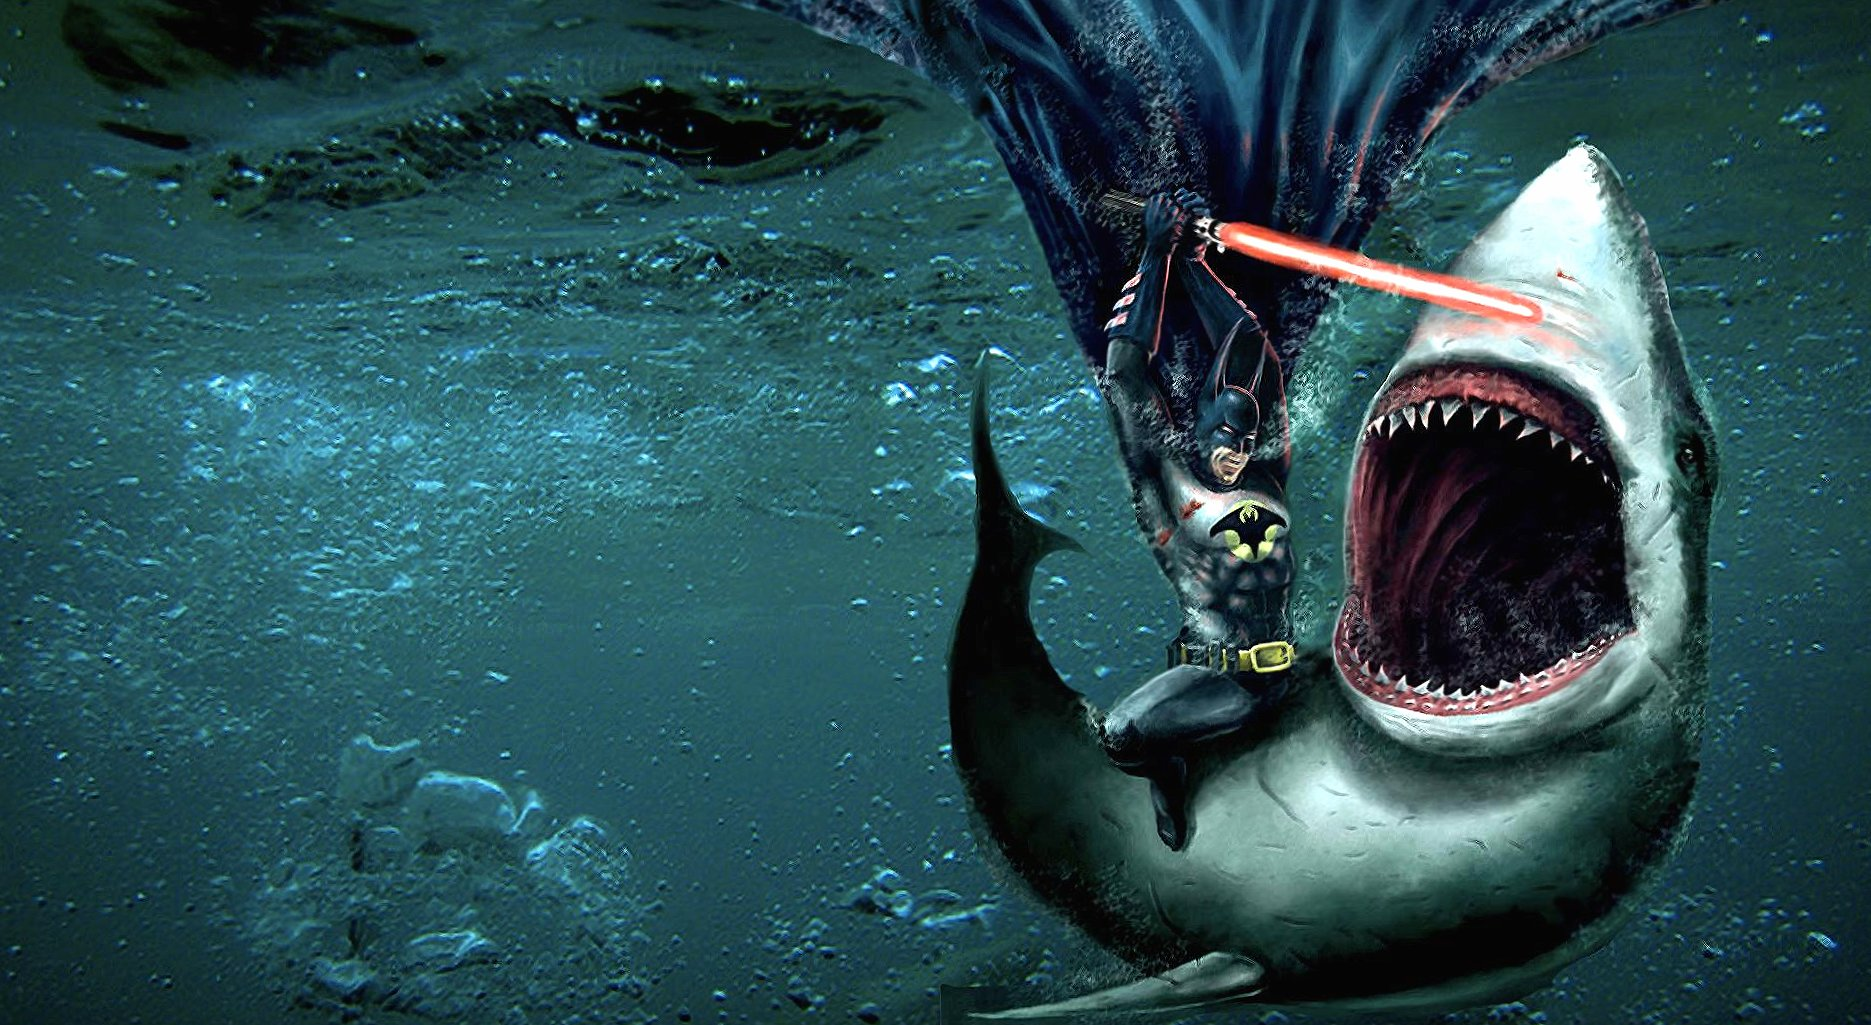 Funny shark vs batman wallpapers HD quality